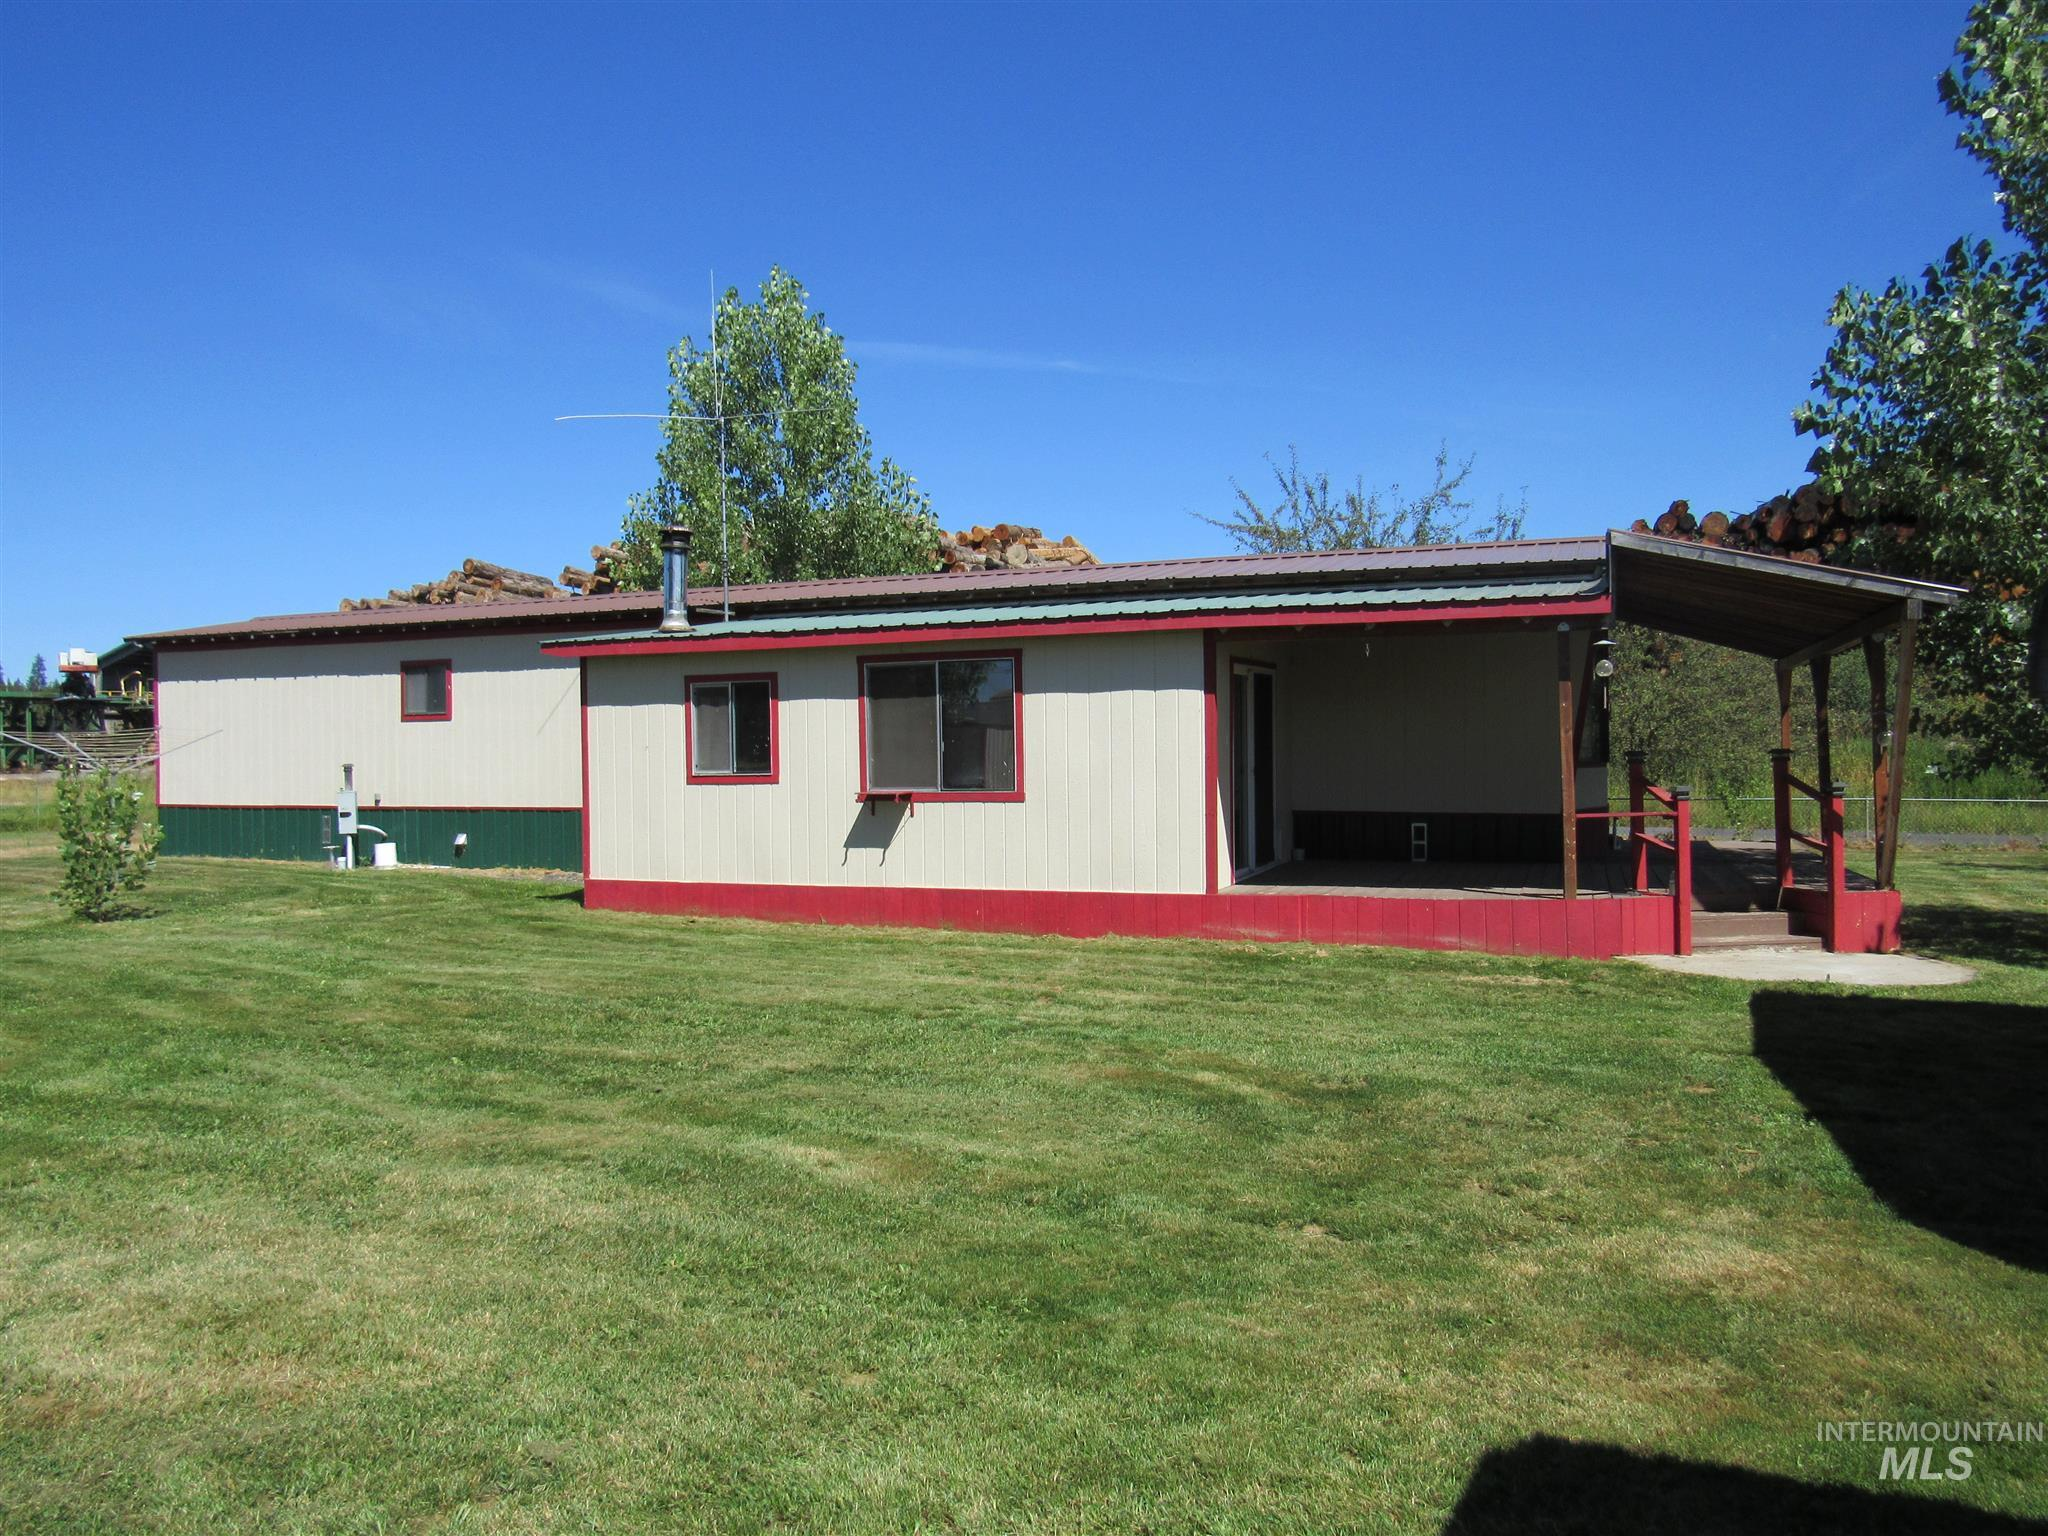 507 E 1st St., Weippe, Idaho 83553, 2 Bedrooms, 1 Bathroom, Residential For Sale, Price $99,000, 98776653